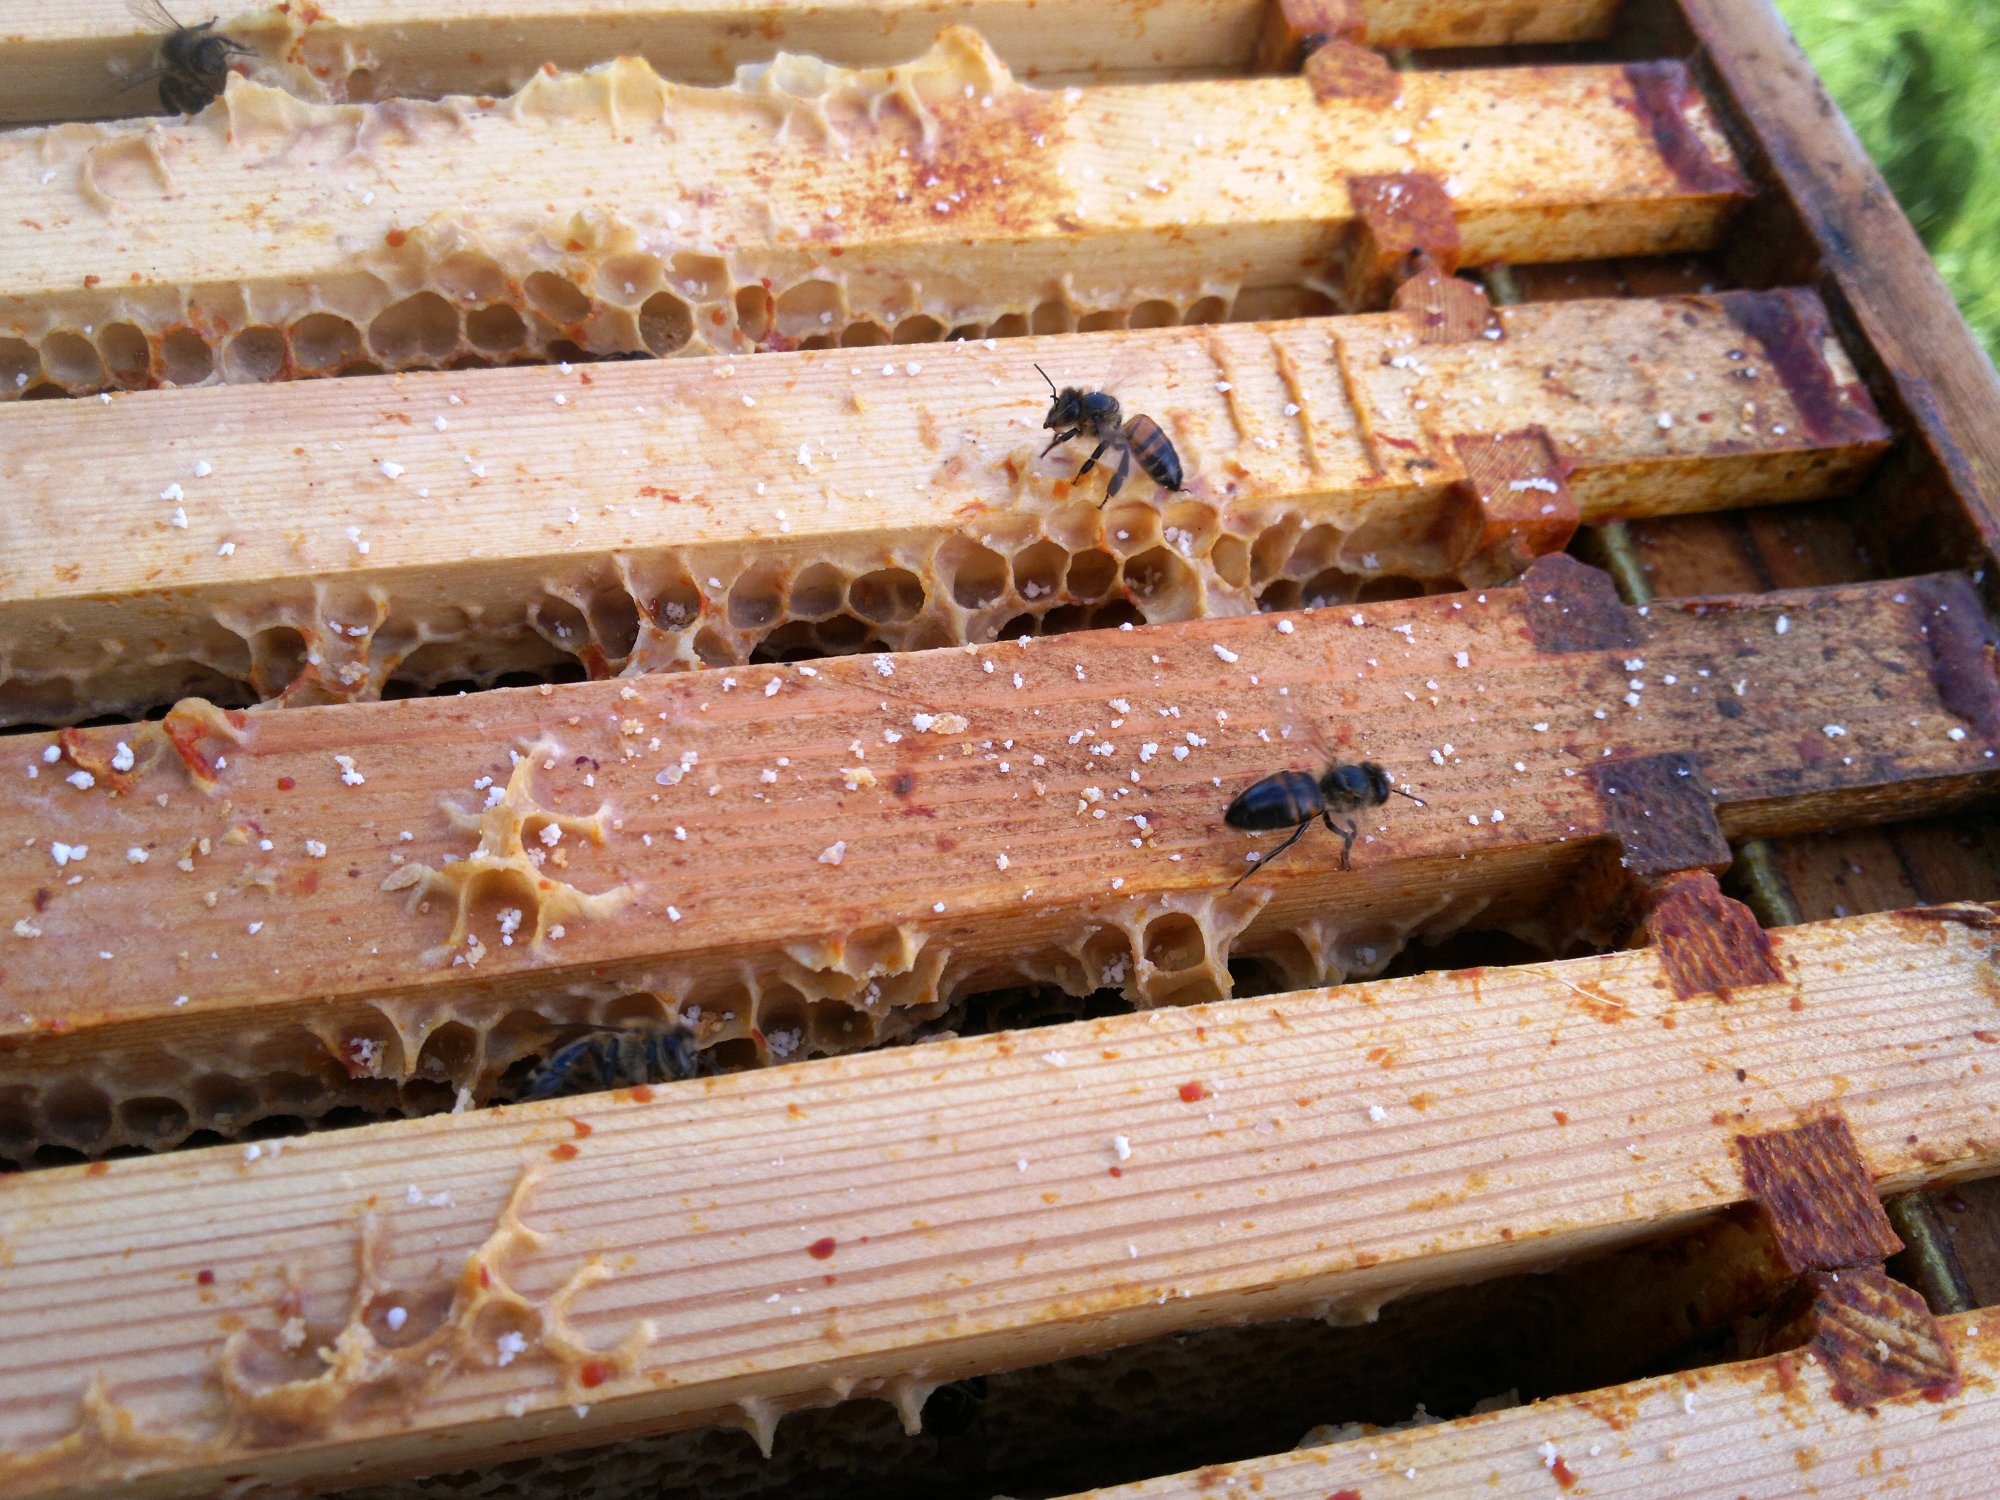 The robbers: we found this unidentified bee clearing out what remains of the honey